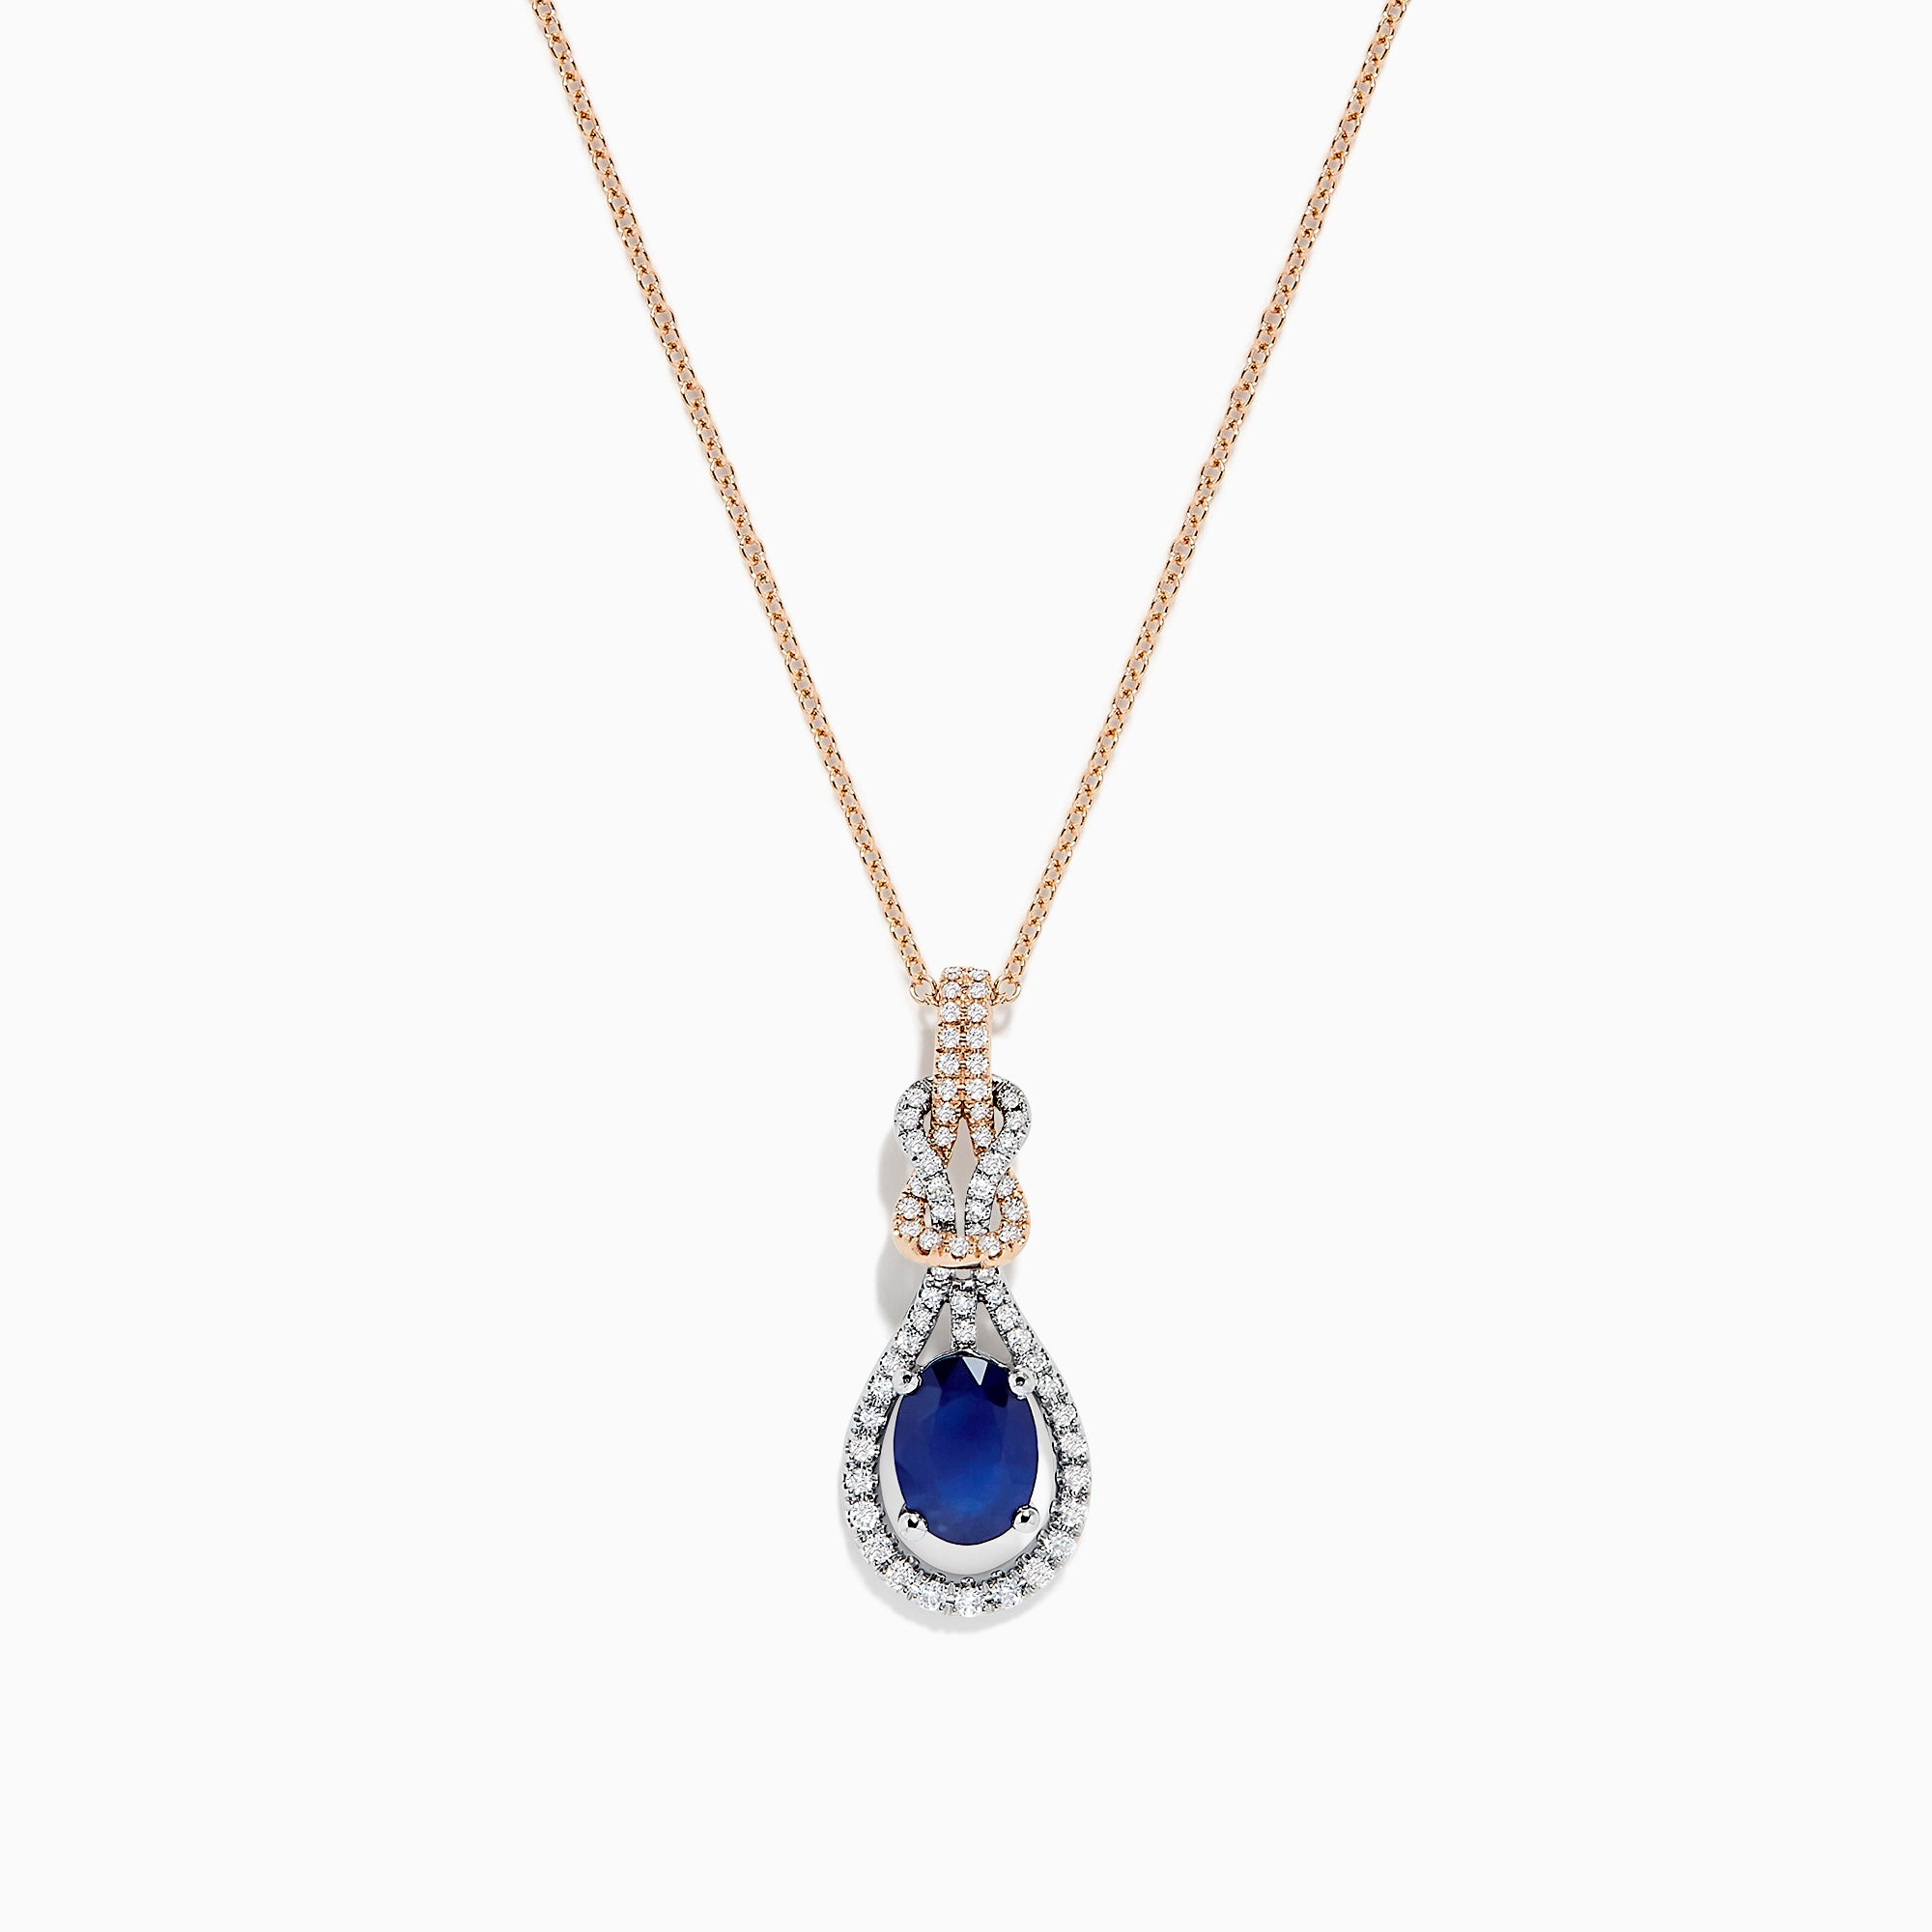 Effy 14K Two Tone Gold Sapphire and Diamond Pendant, 1.66 TCW